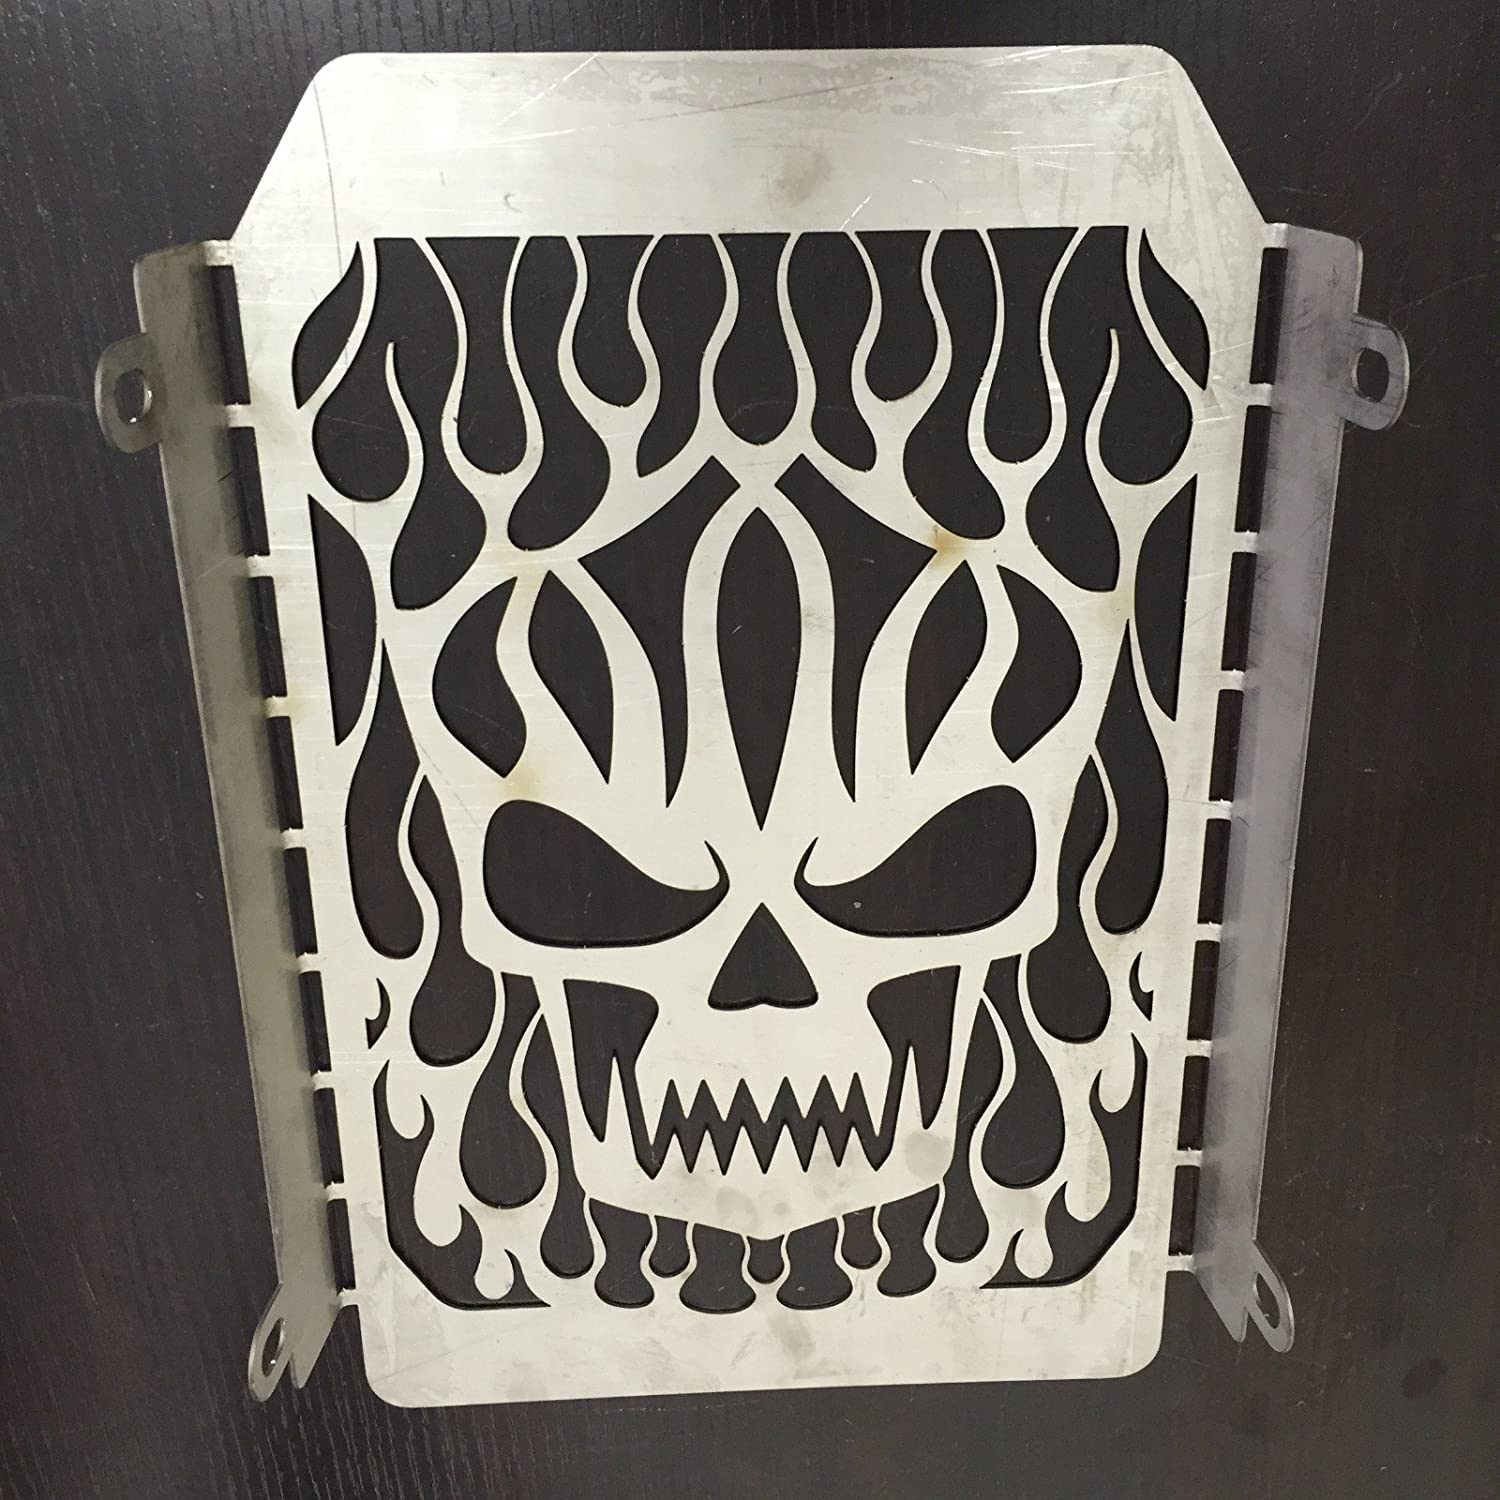 NBX-Chrome Skull Flame Radiator Grille Cover Stainless For Compatible with Kawasaki Vulcan VN 1500